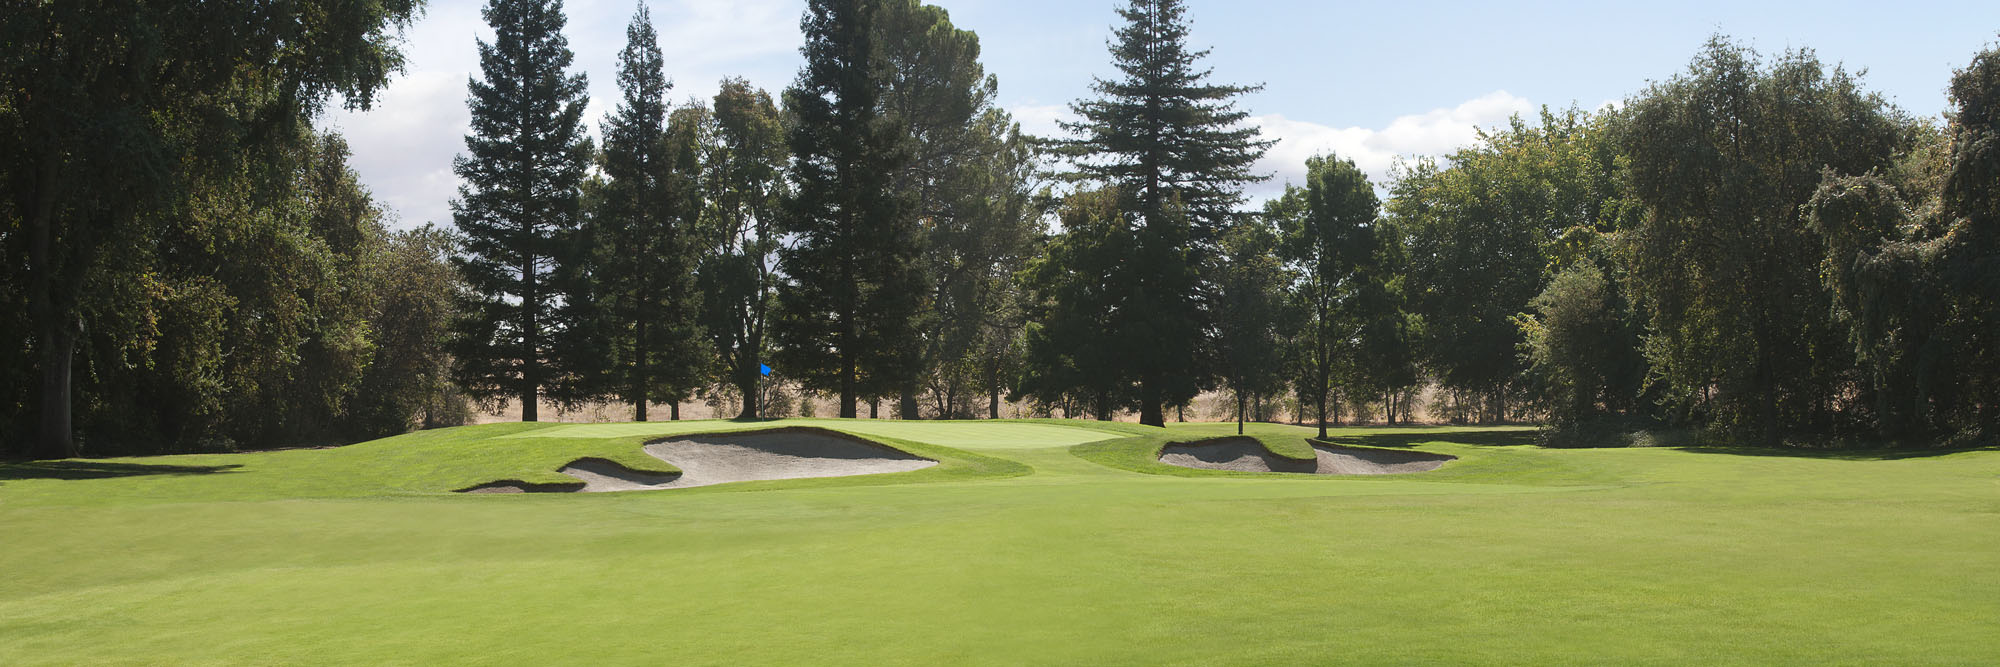 Golf Course Image - Butte Creek Country Club No. 3